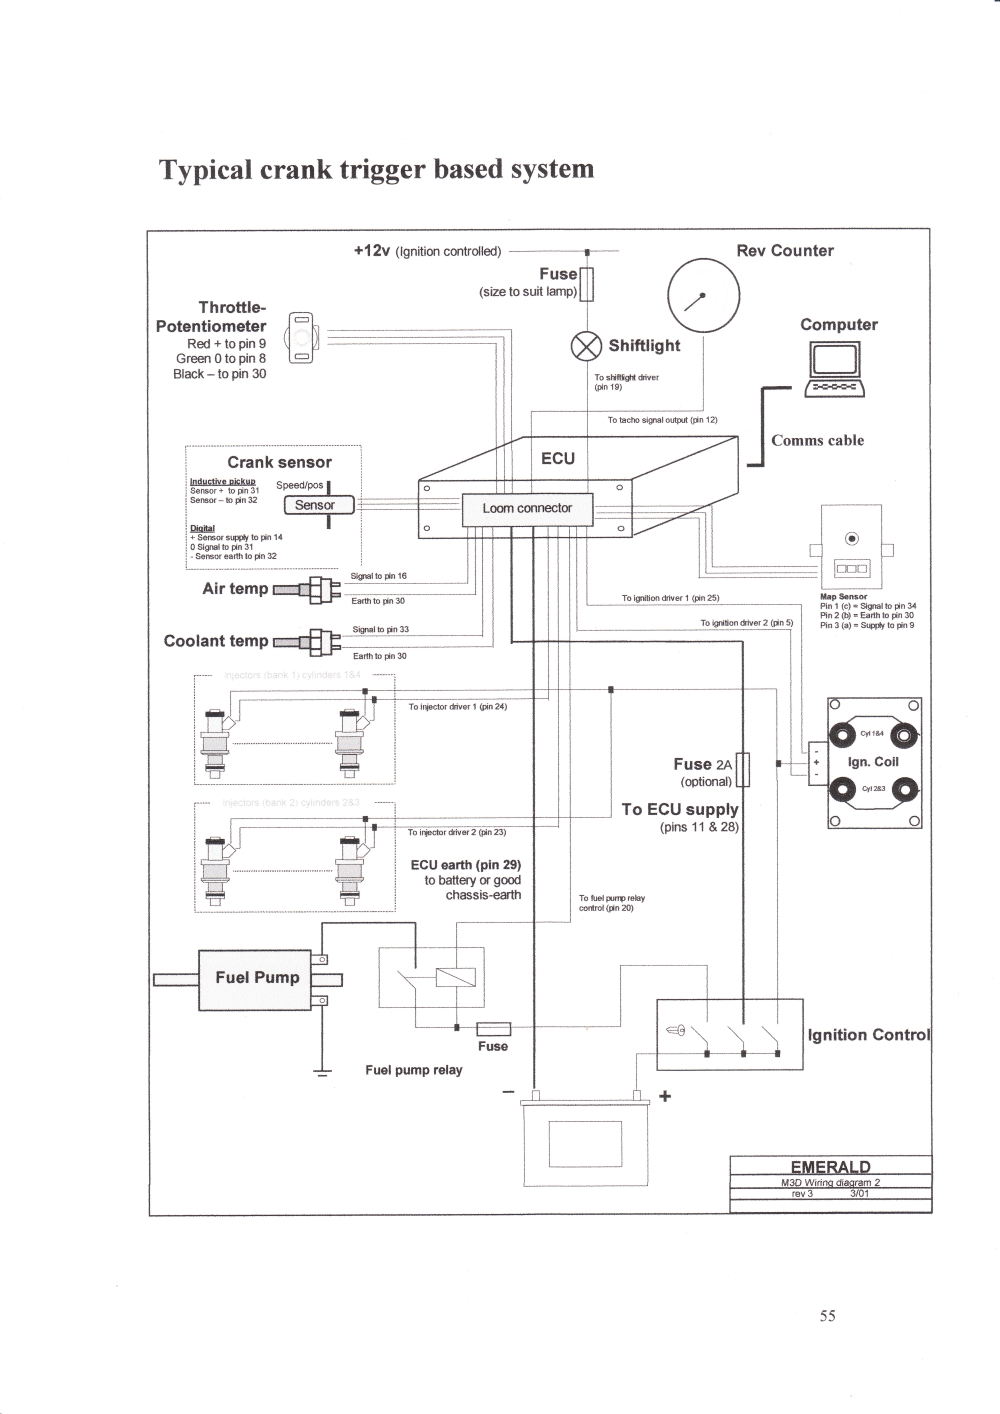 201203022025639669ECU wiring emerald k6 wiring diagram electrical wiring diagrams \u2022 wiring Residential Electrical Wiring Diagrams at alyssarenee.co